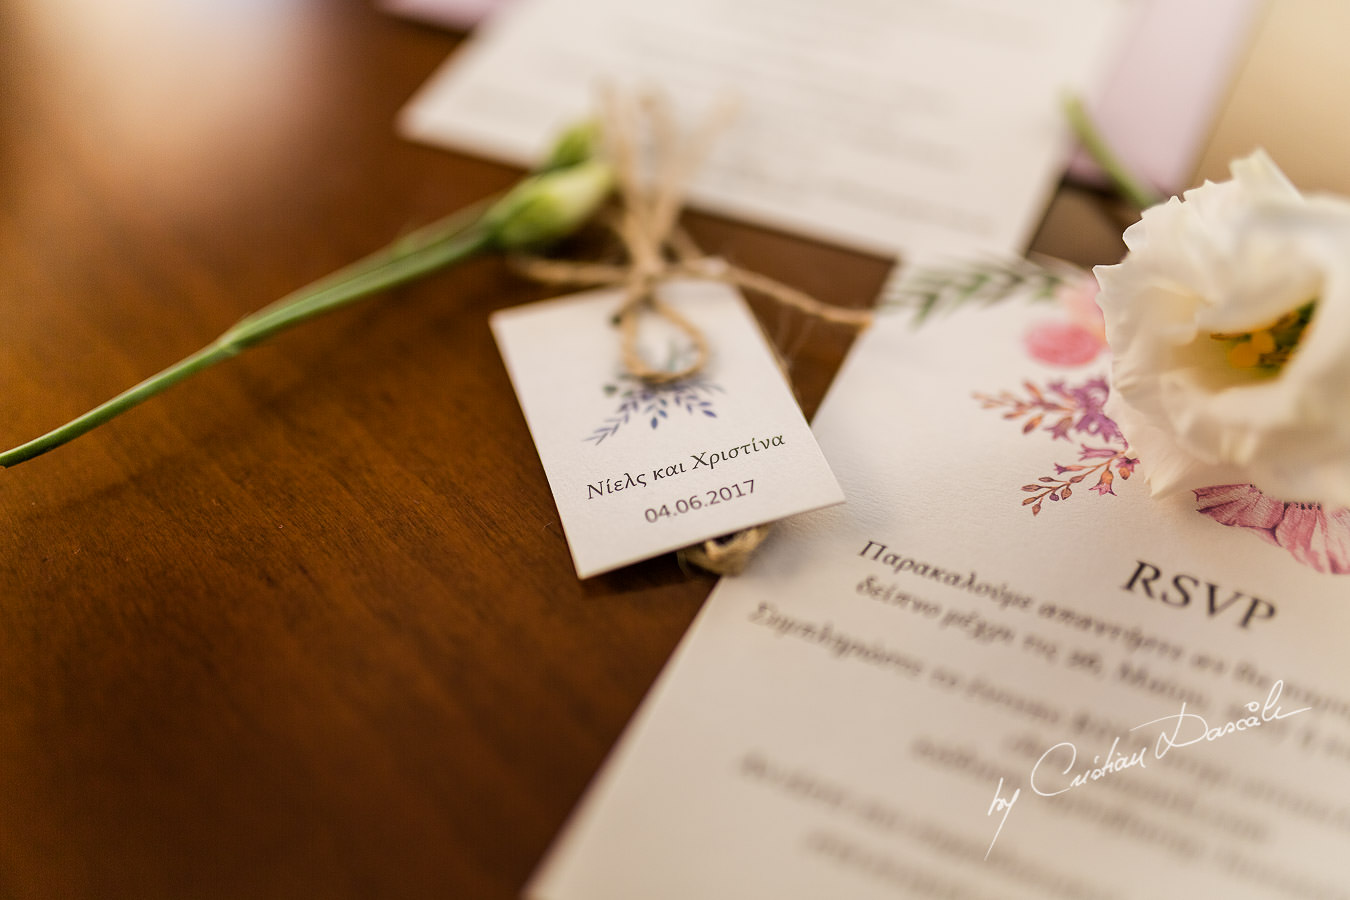 Beautiful Wedding details photographed by Cristian Dascalu during a wedding ceremony at St Raphael Hotel in Limassol, Cyprus.